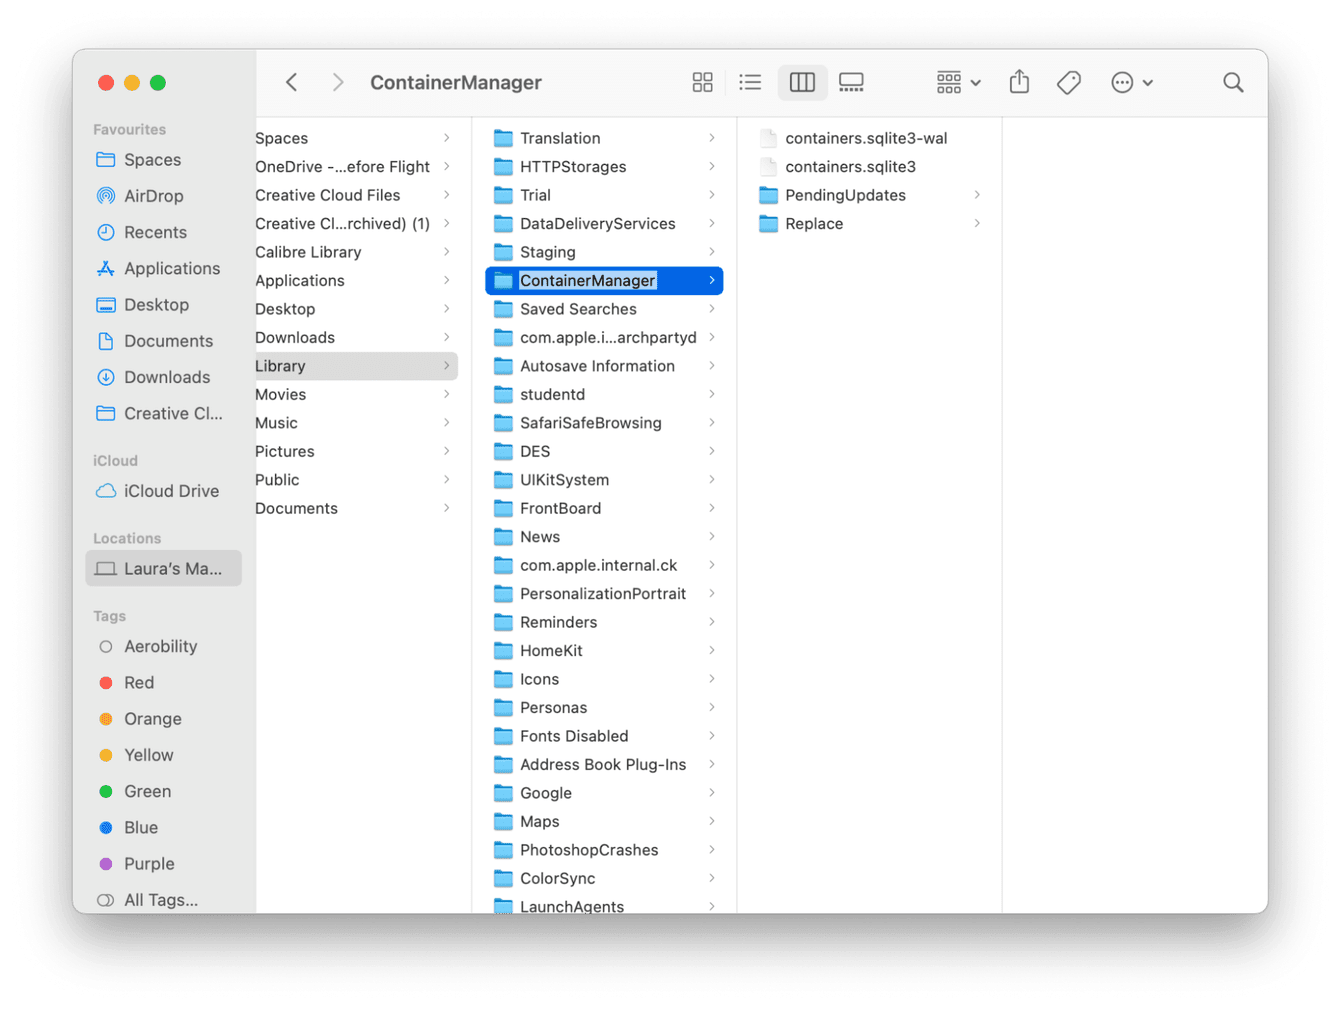 Container manager folder